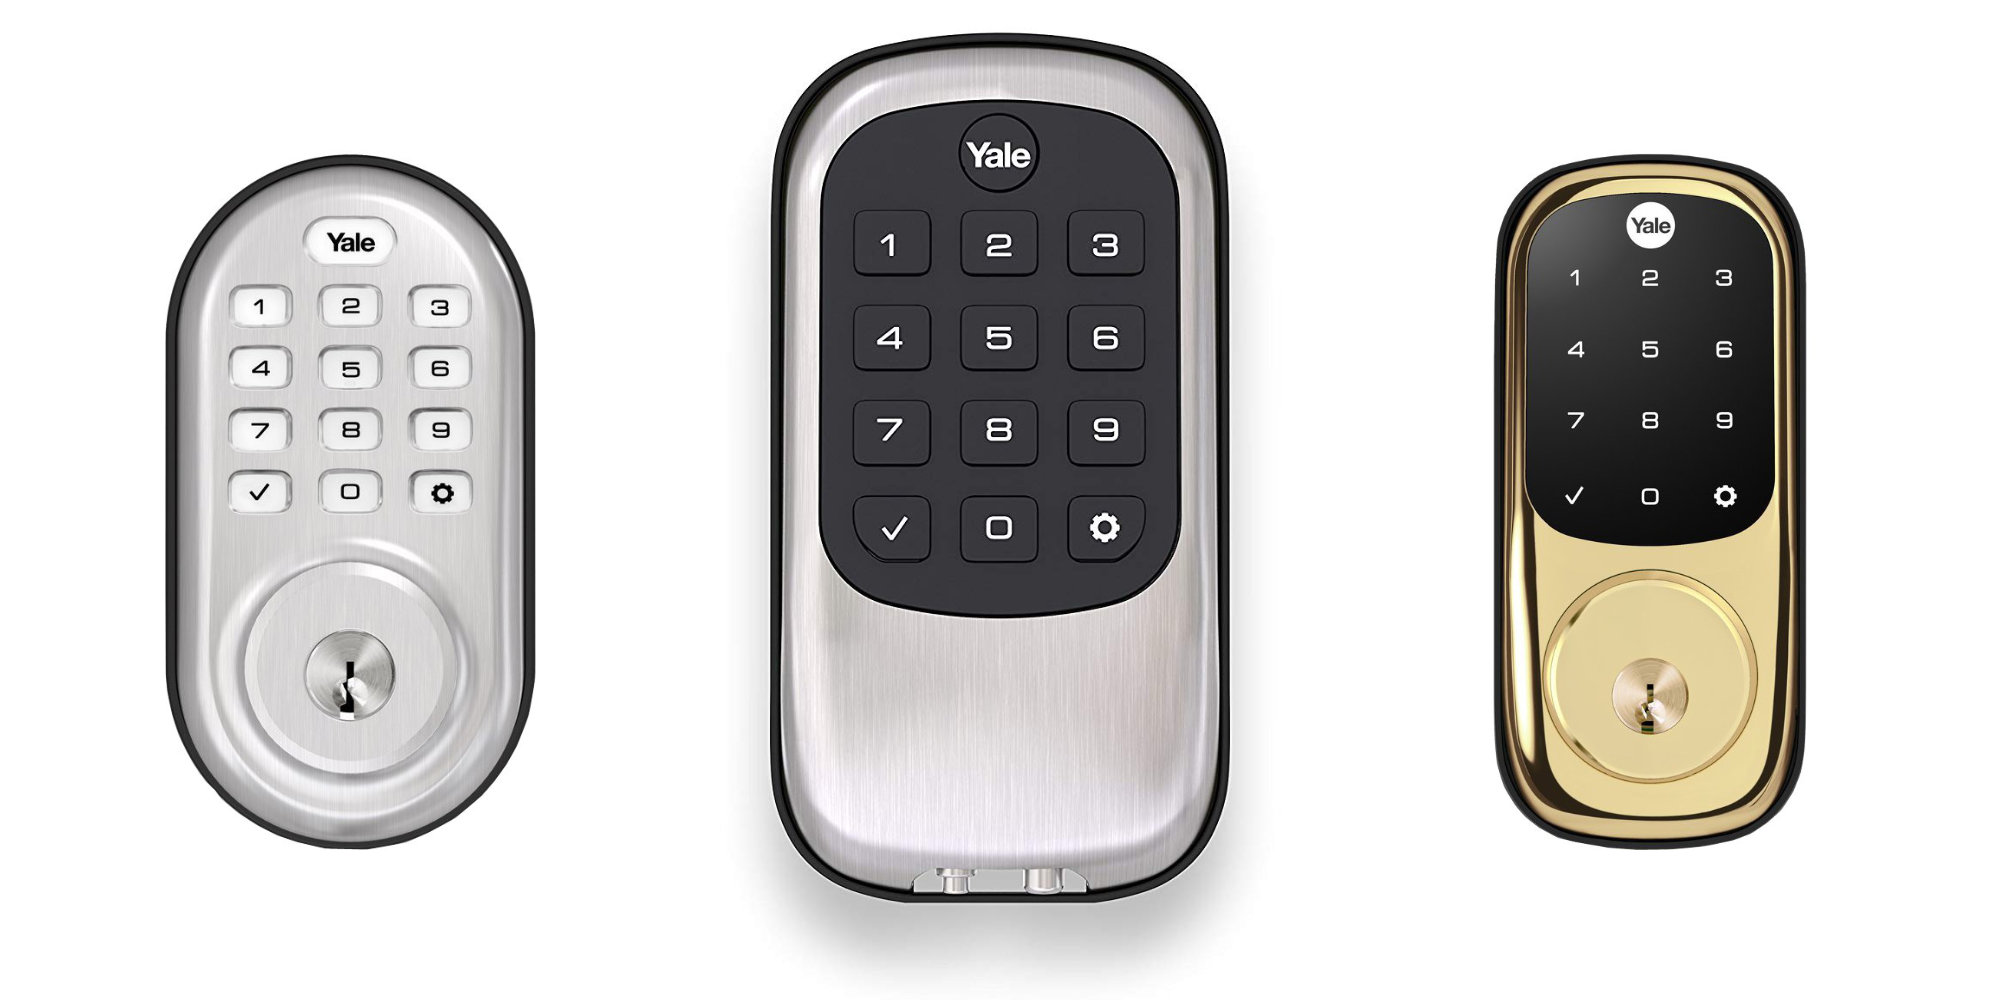 Today only, Yale Z-Wave Smart Locks are up to 40% off w/ prices starting at $92.50